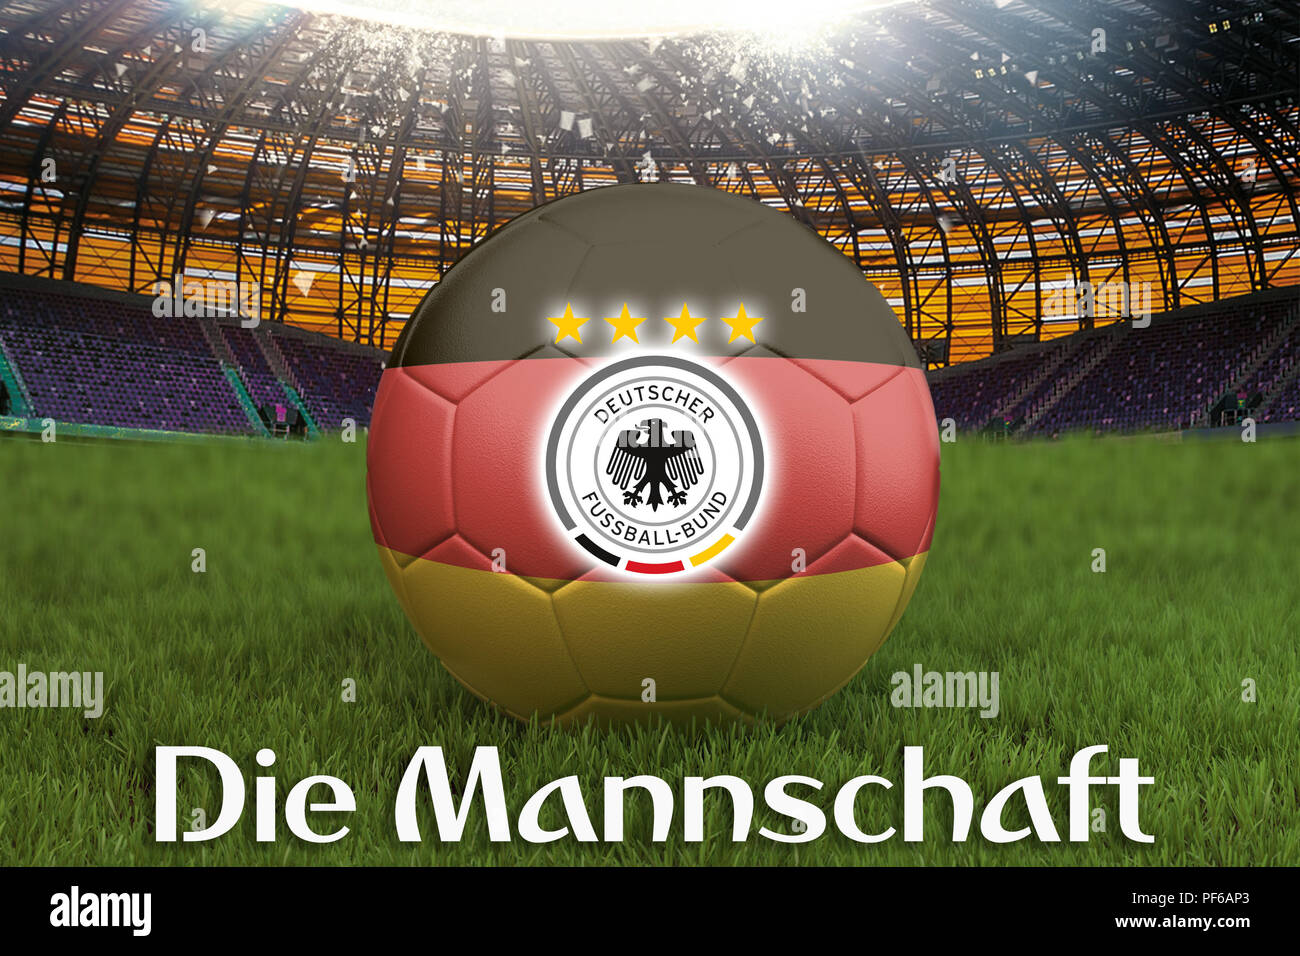 Die Mannschaft on Germany language on football team ball on big stadium background with Germany Team logo competition concept. Germany flag on ball te - Stock Image